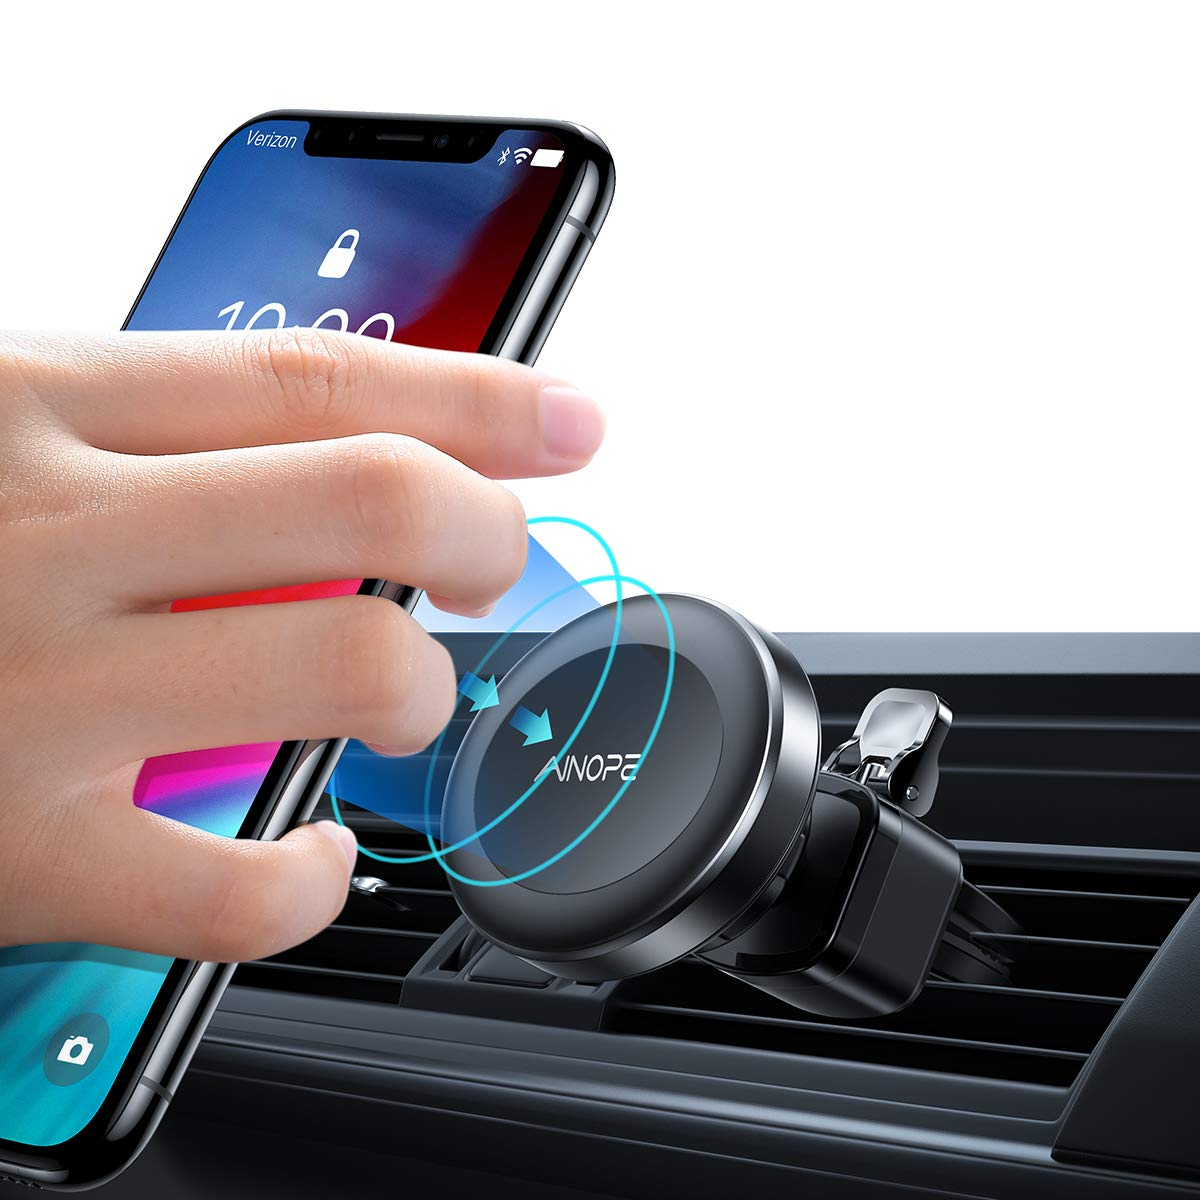 Phone Holder for Car, Upgrade 6 Strong Magnetic Car Phone Mount 360° Rotation Phone Magnet Car Mount Air Vent Phone Holder Compatible iPhone Xs MAX/XR/X/8/7, Galaxy Note 9/S10/S8/S7, iPad Air 2/Mini 3